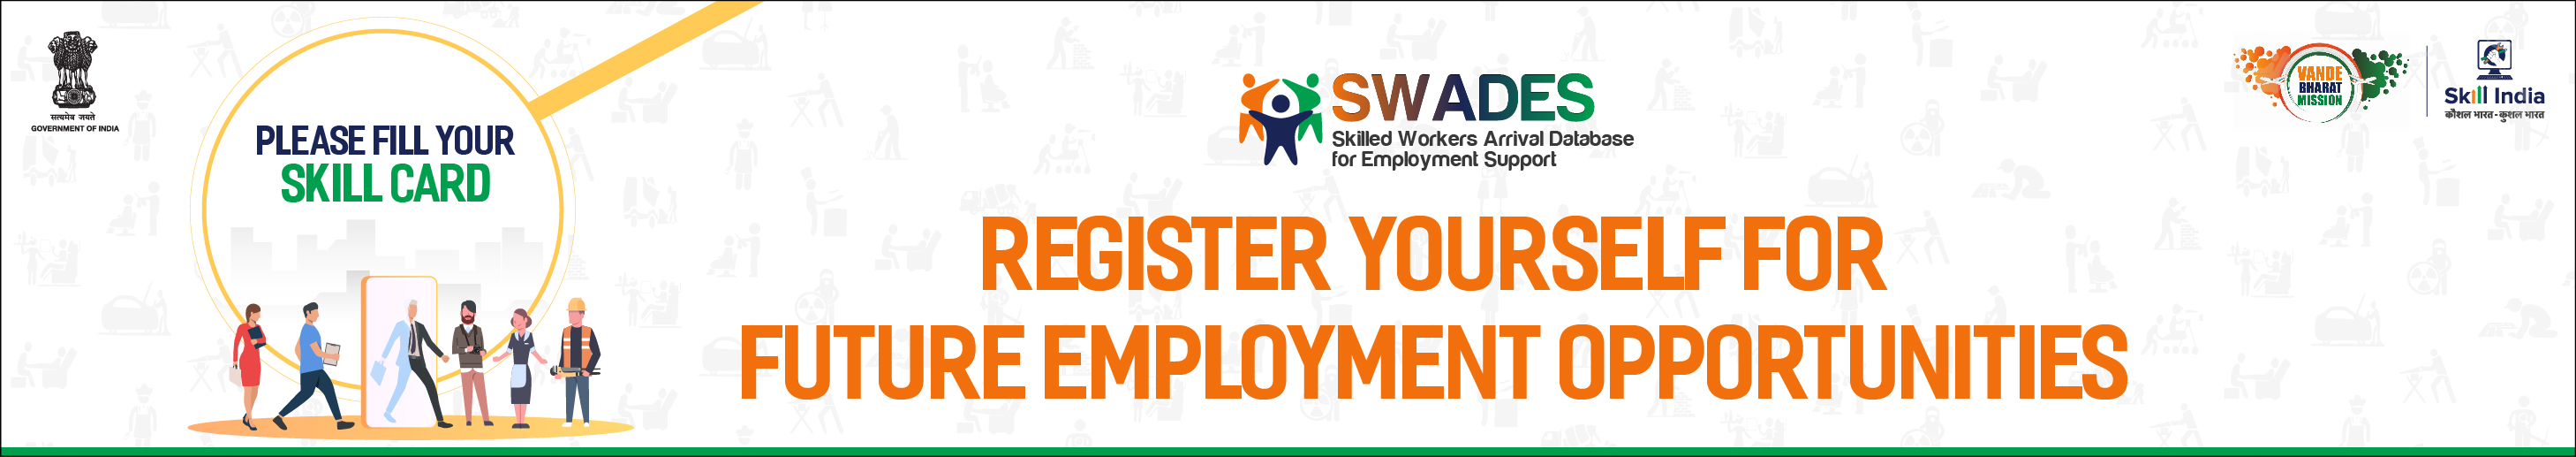 Register for future Employment Opportunities, Indian Government, iiQ8 1